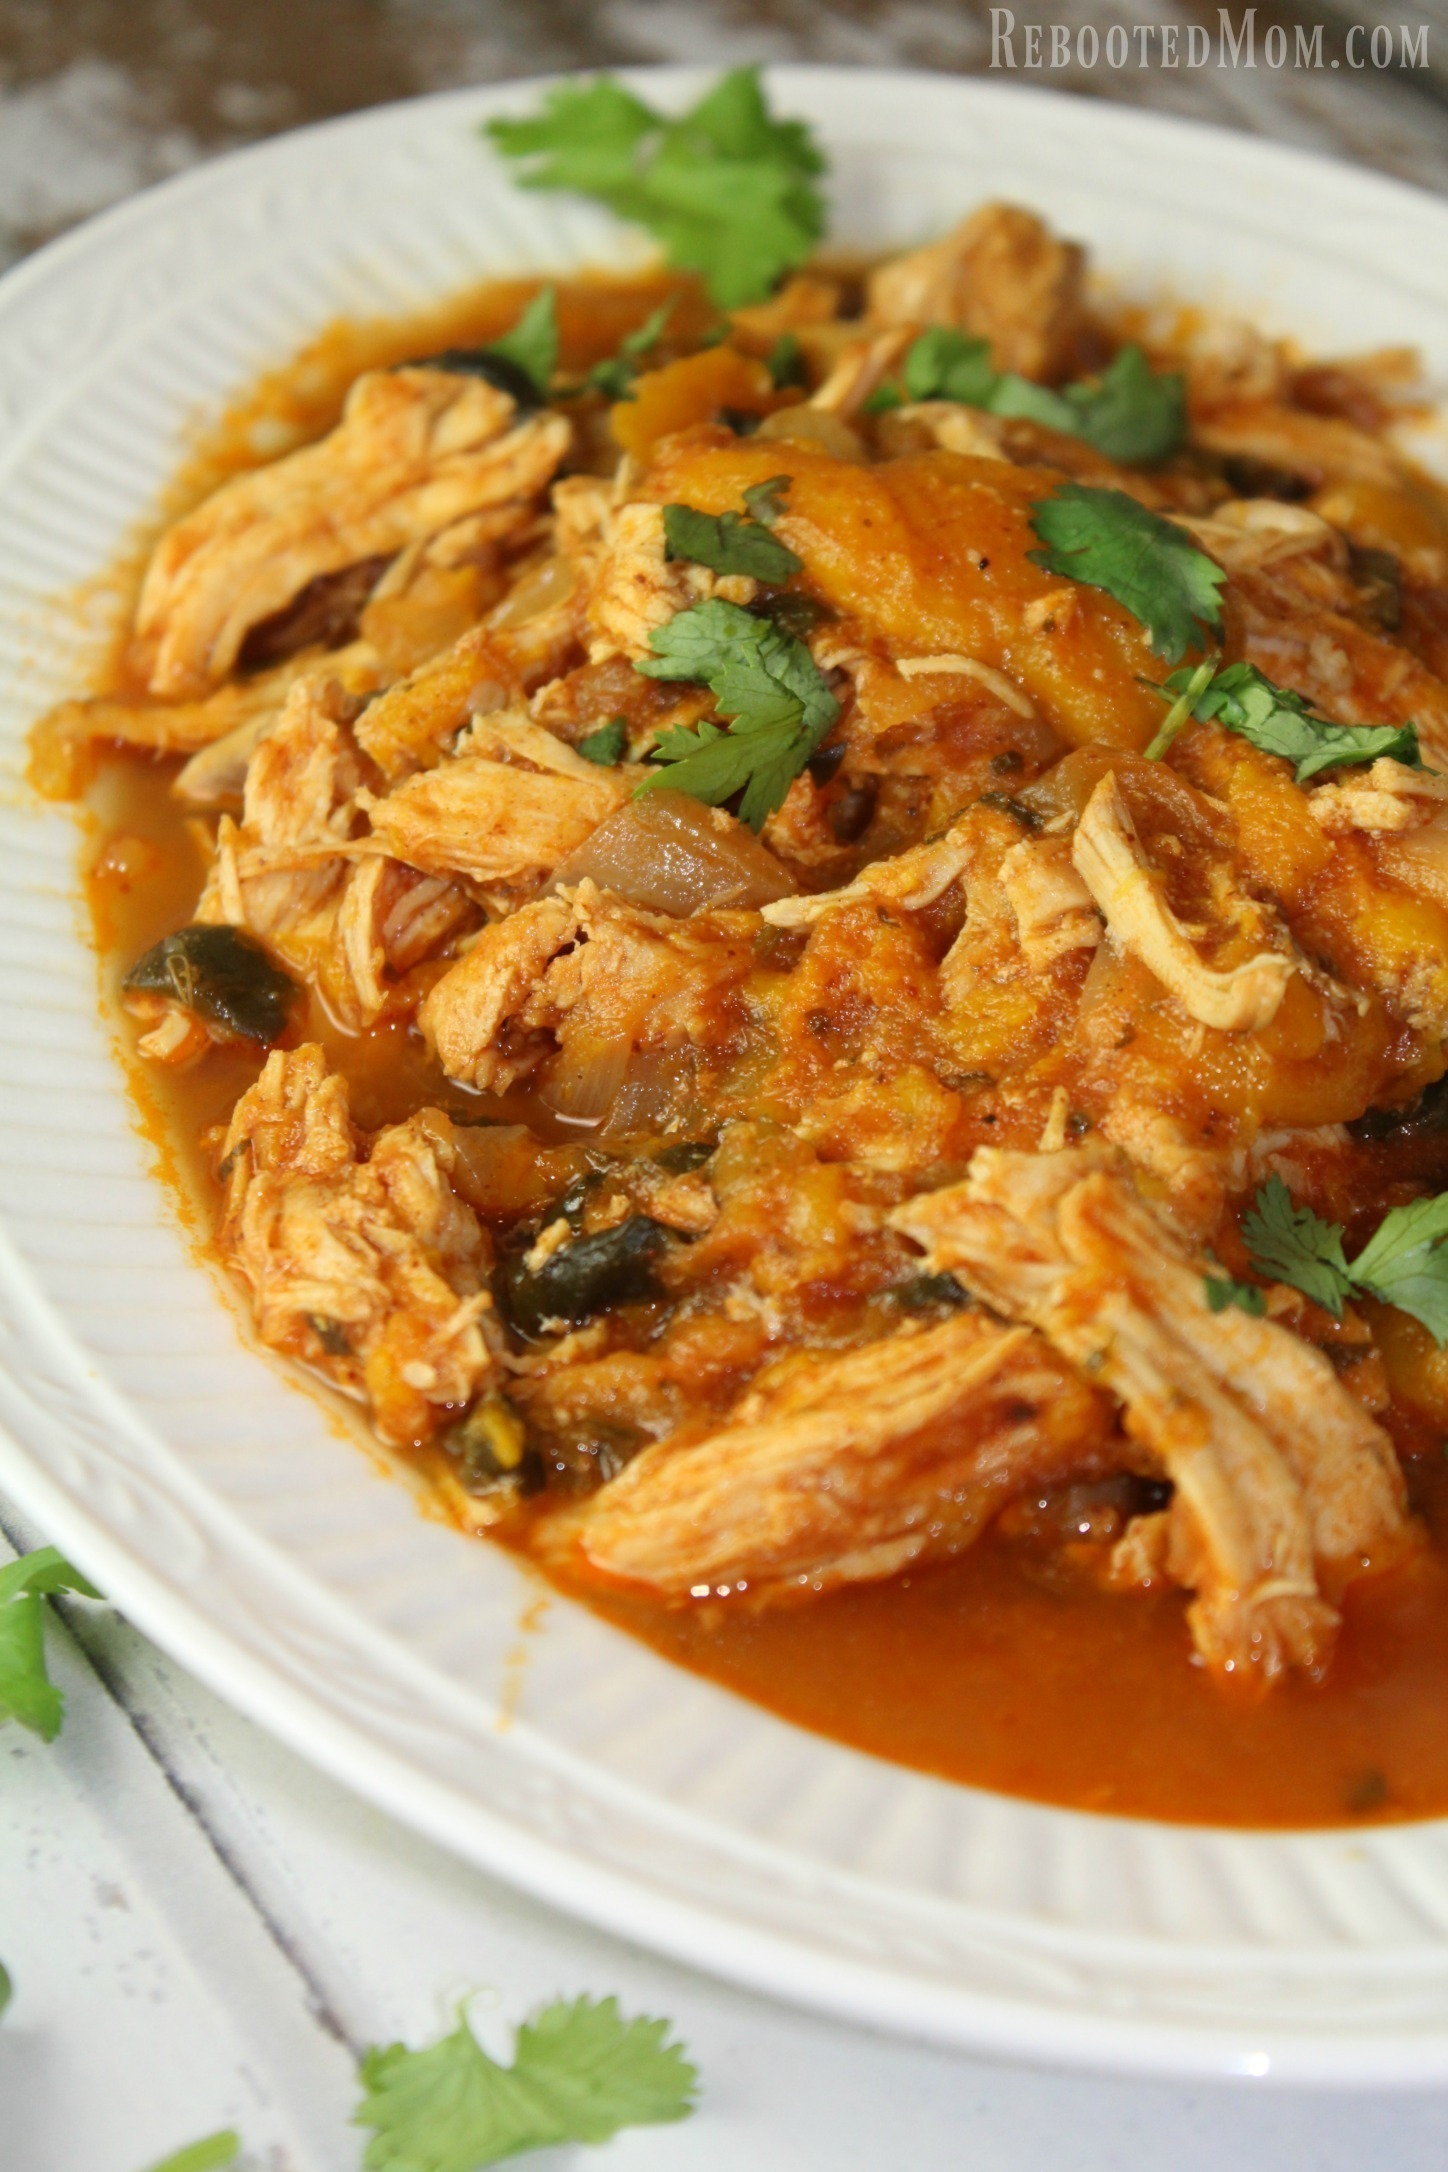 This Mango Lime Pulled Chicken is a one pot meal of shredded chicken that bathes in a fiery sauce of mangoes, tomatoes, and spices that's wonderful served over rice.